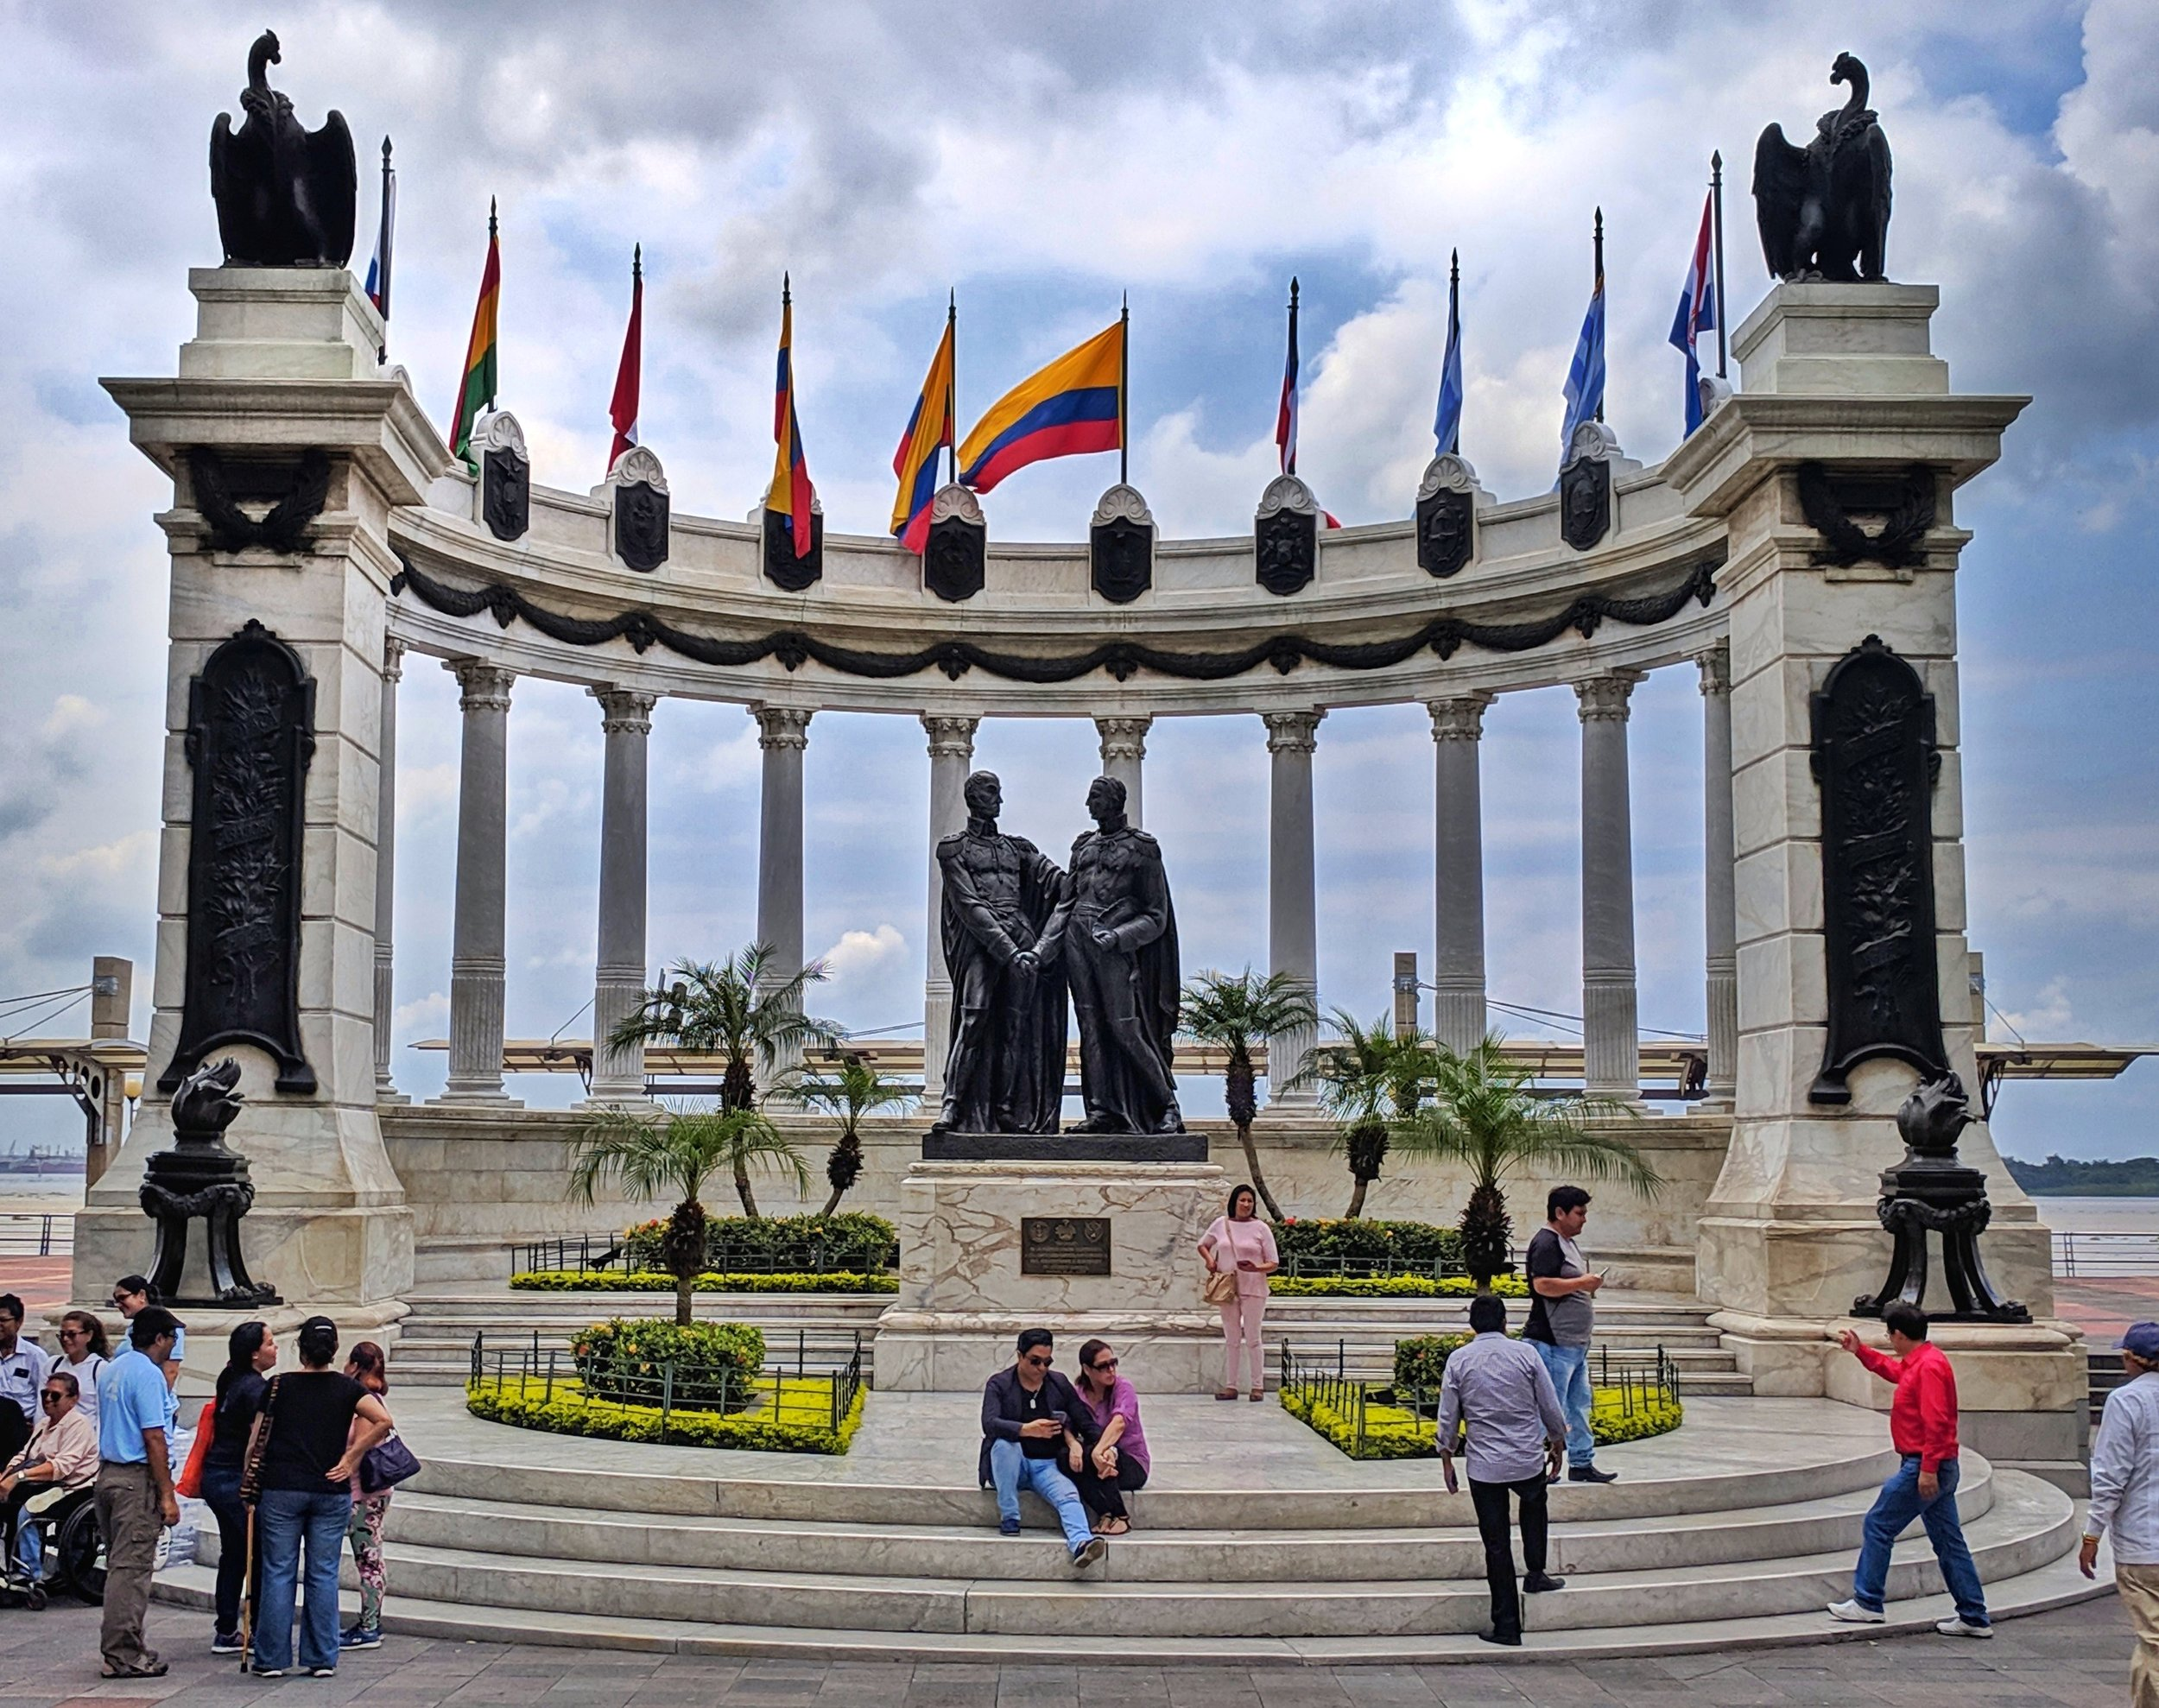 A monument commemorating the meeting of Simón Bolívar and José de San Martín in 1822 held in Guayaquil. Between the two libertadores (liberators), they managed to free the modern-day countries of Venezuela, Bolivia, Colombia, Ecuador, Peru, Panama, Argentina, Chile and Peru from the Spanish.